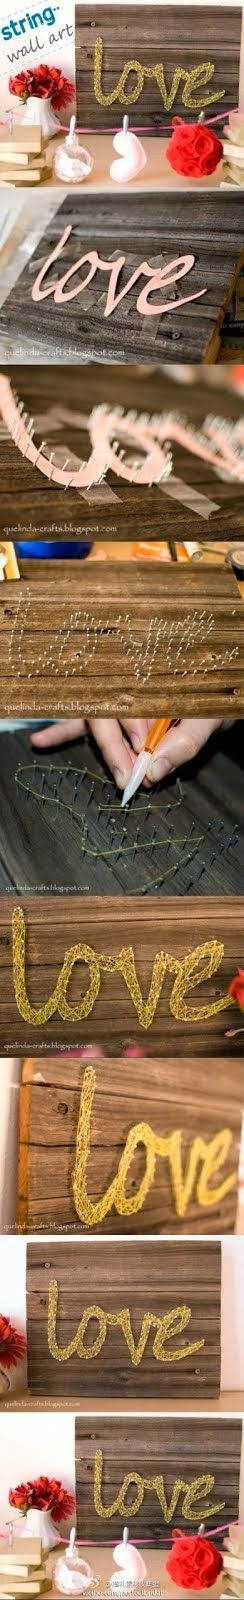 Diy Project : String Wall Art.  Cadette Woodworking badge idea